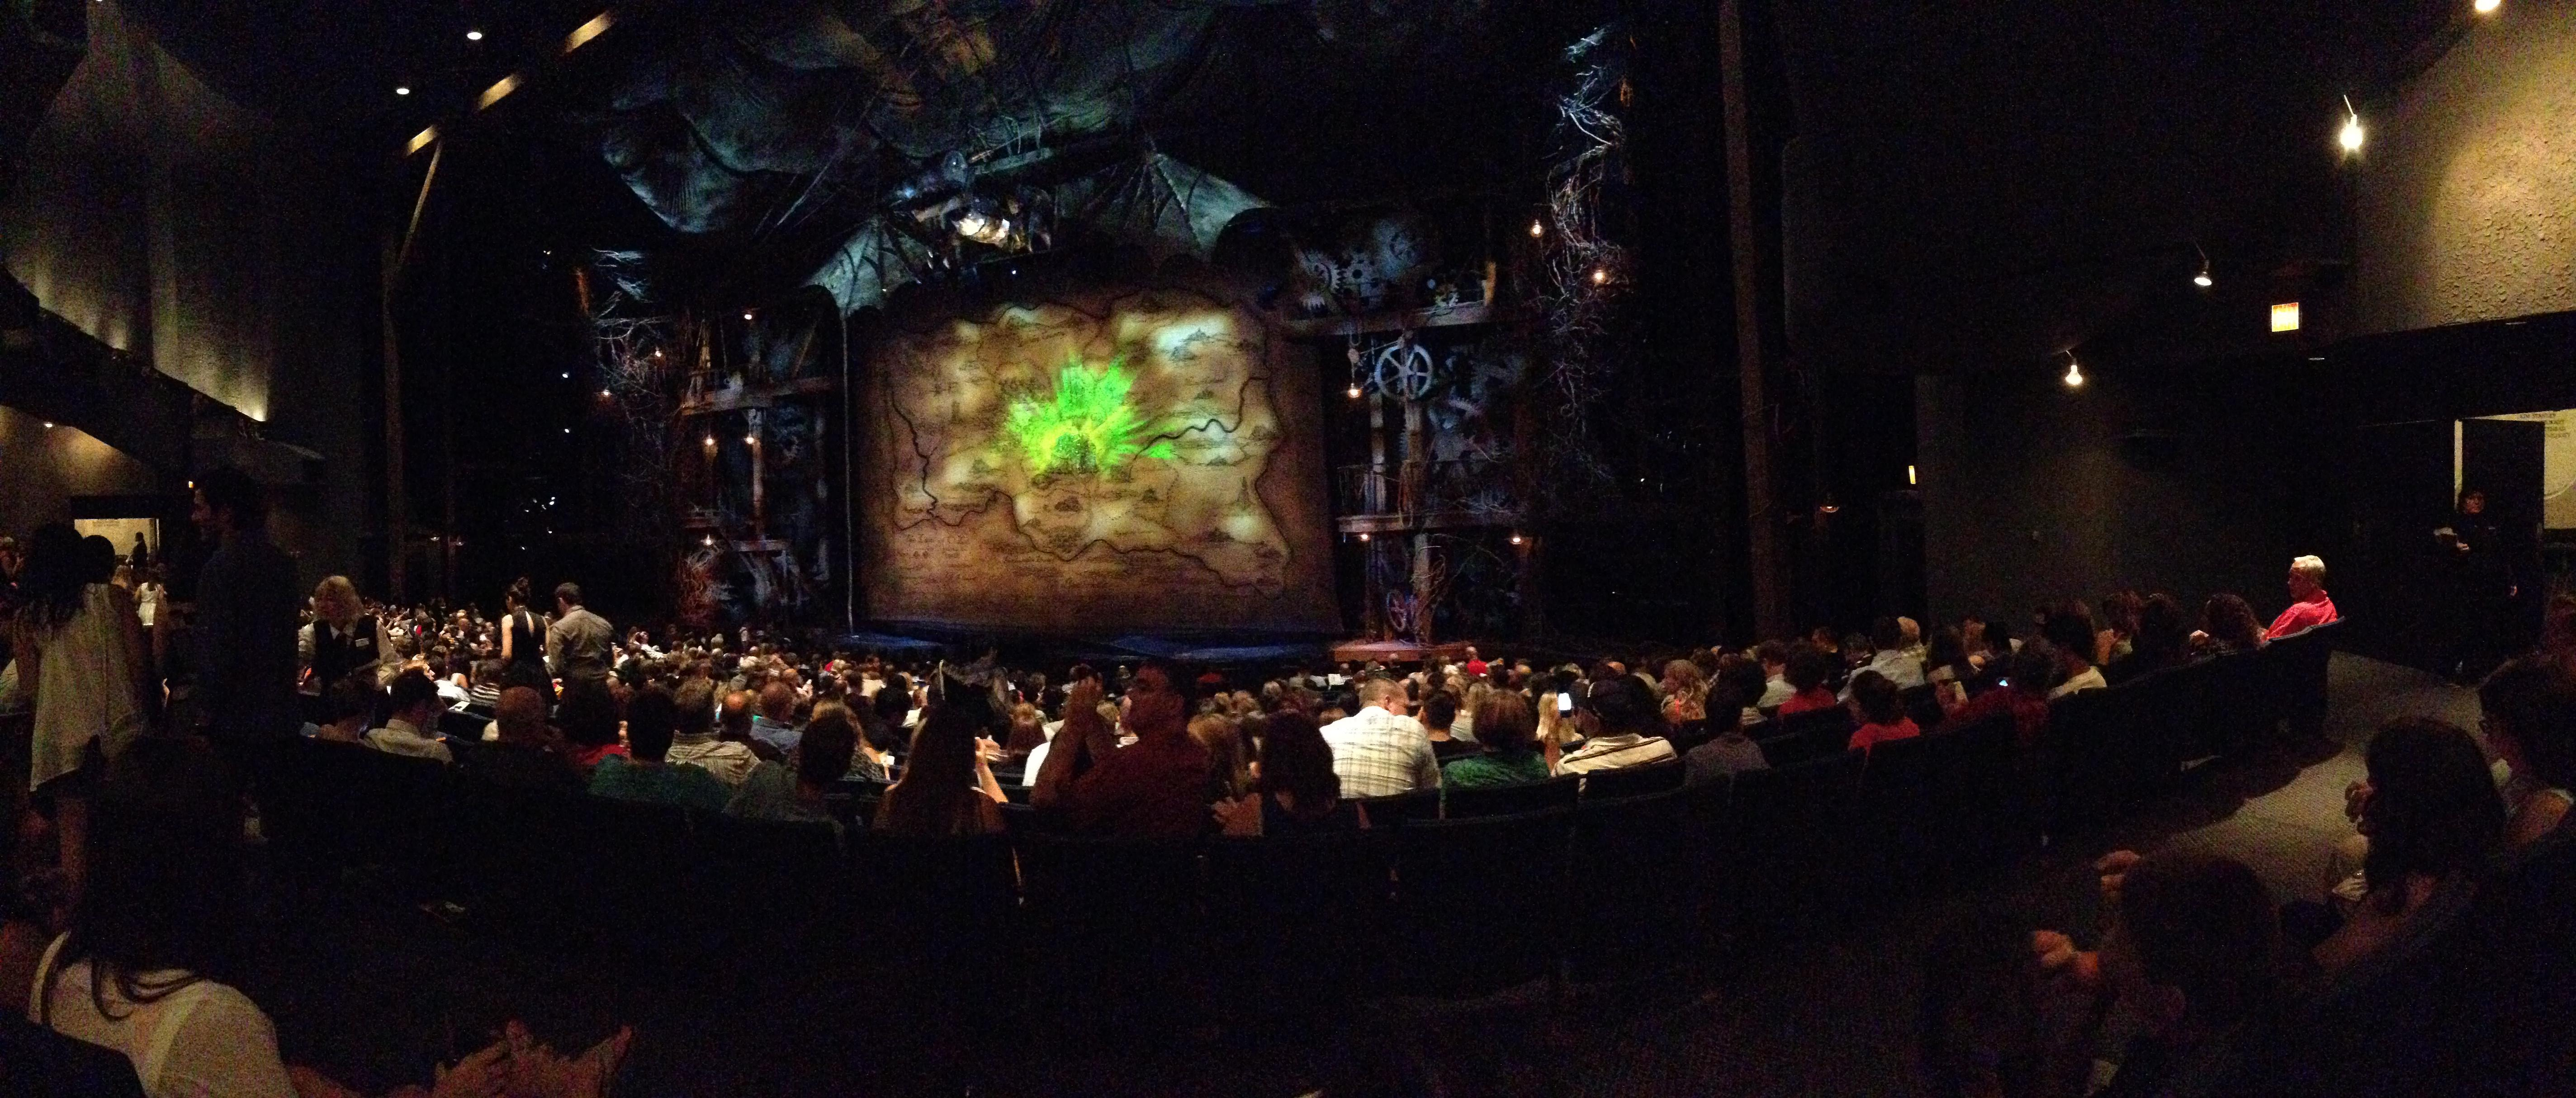 Gershwin Theatre Section Orchestra R Row R Seat 20